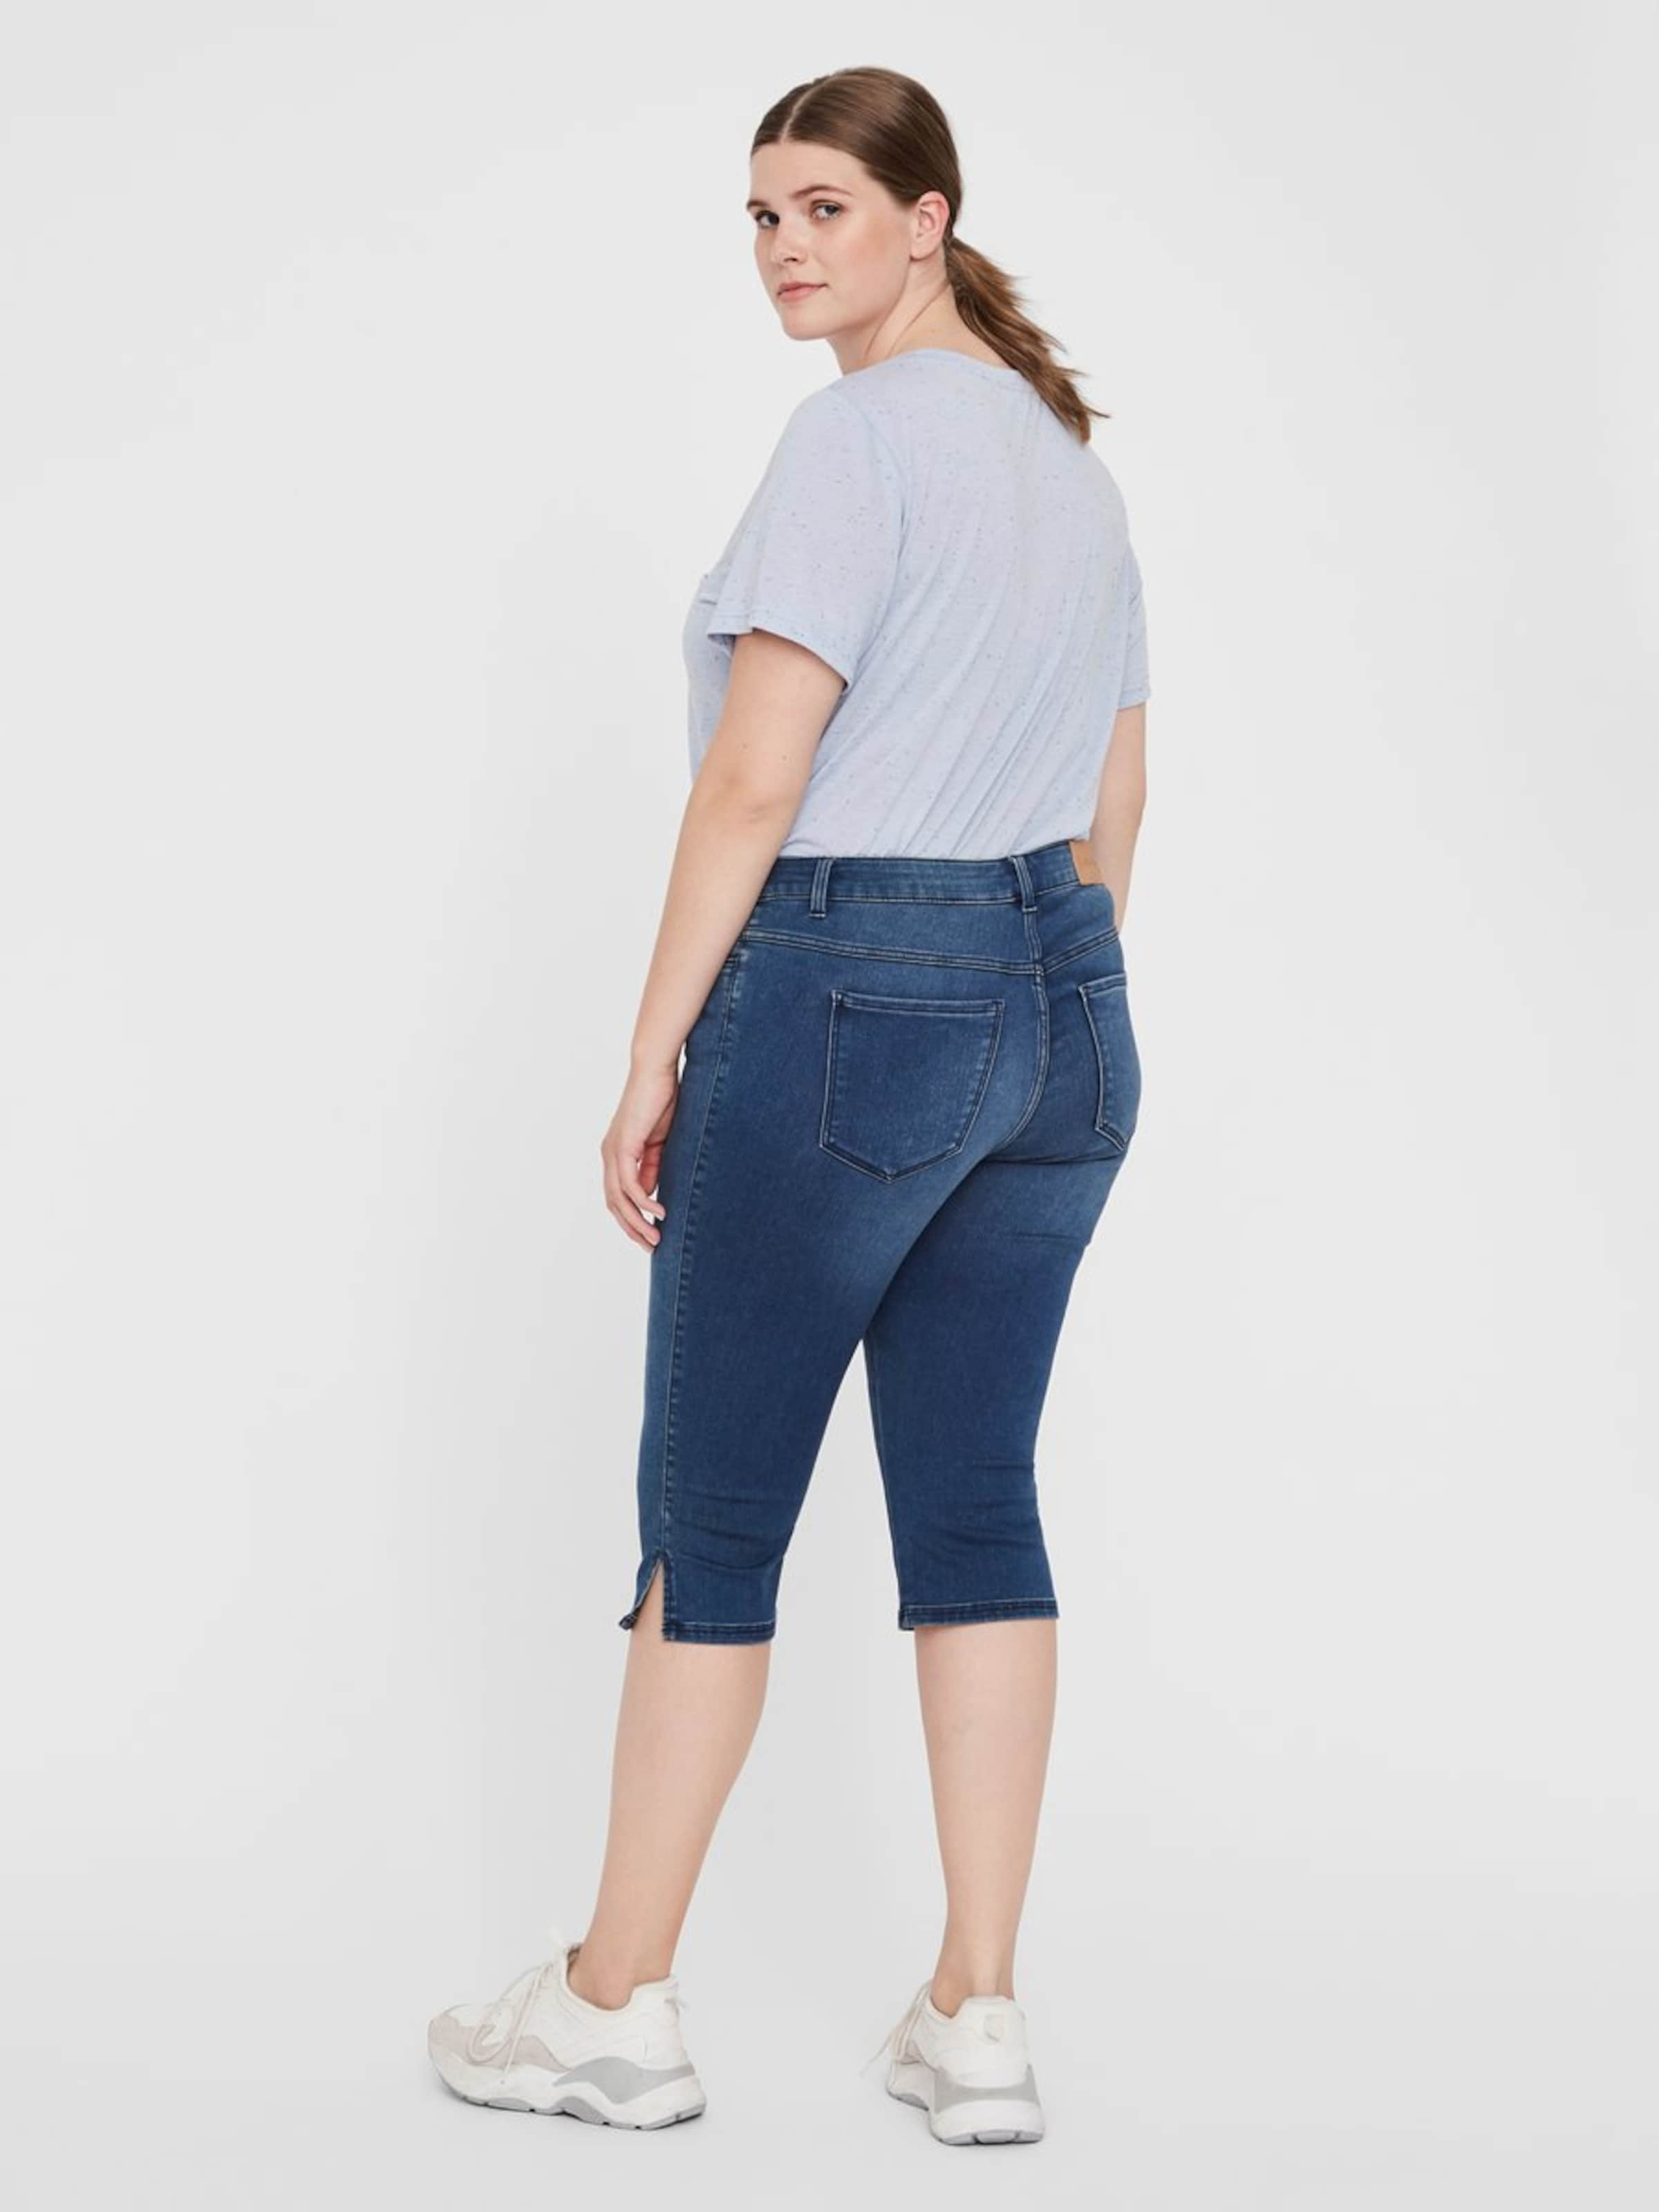 Blue Junarose Denim Jeans 'five In Mathilda' oWxerdCB